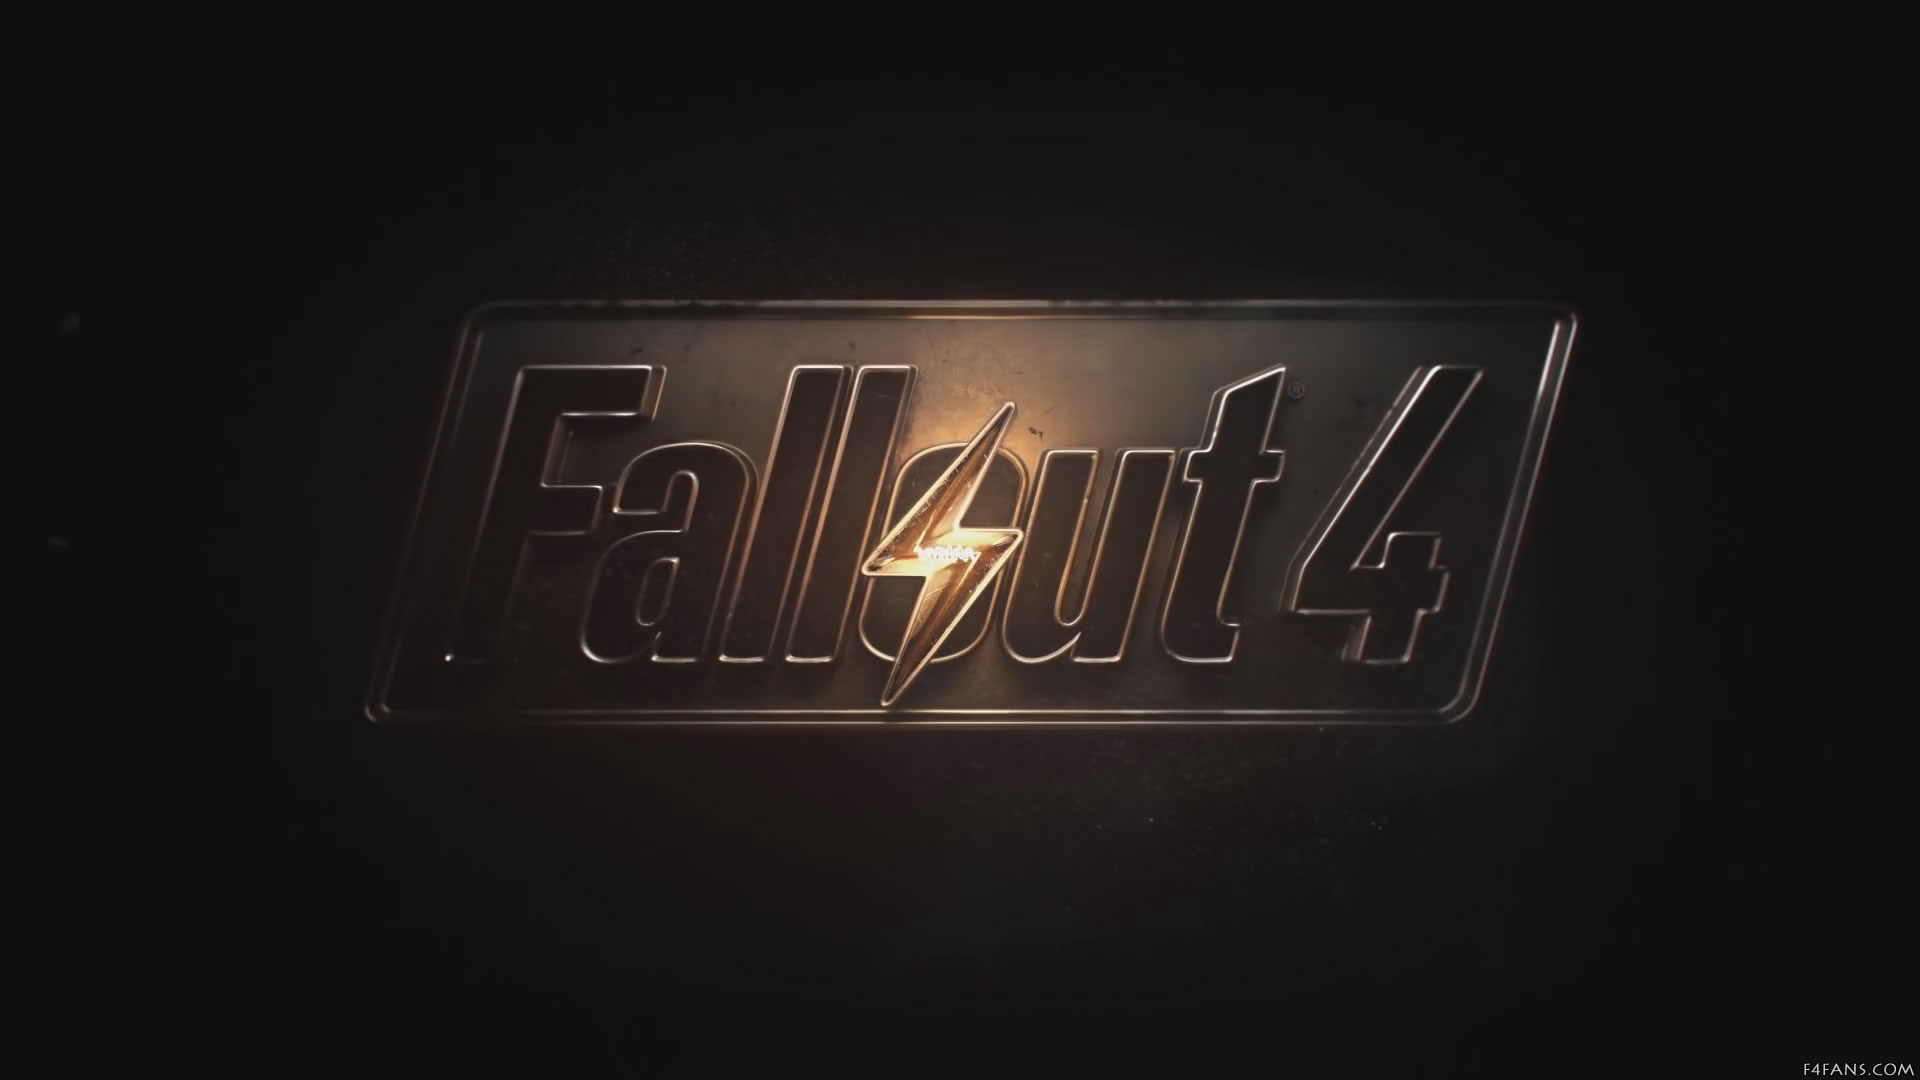 Fallout 4 game logo on a black background taken from the games 1920x1080